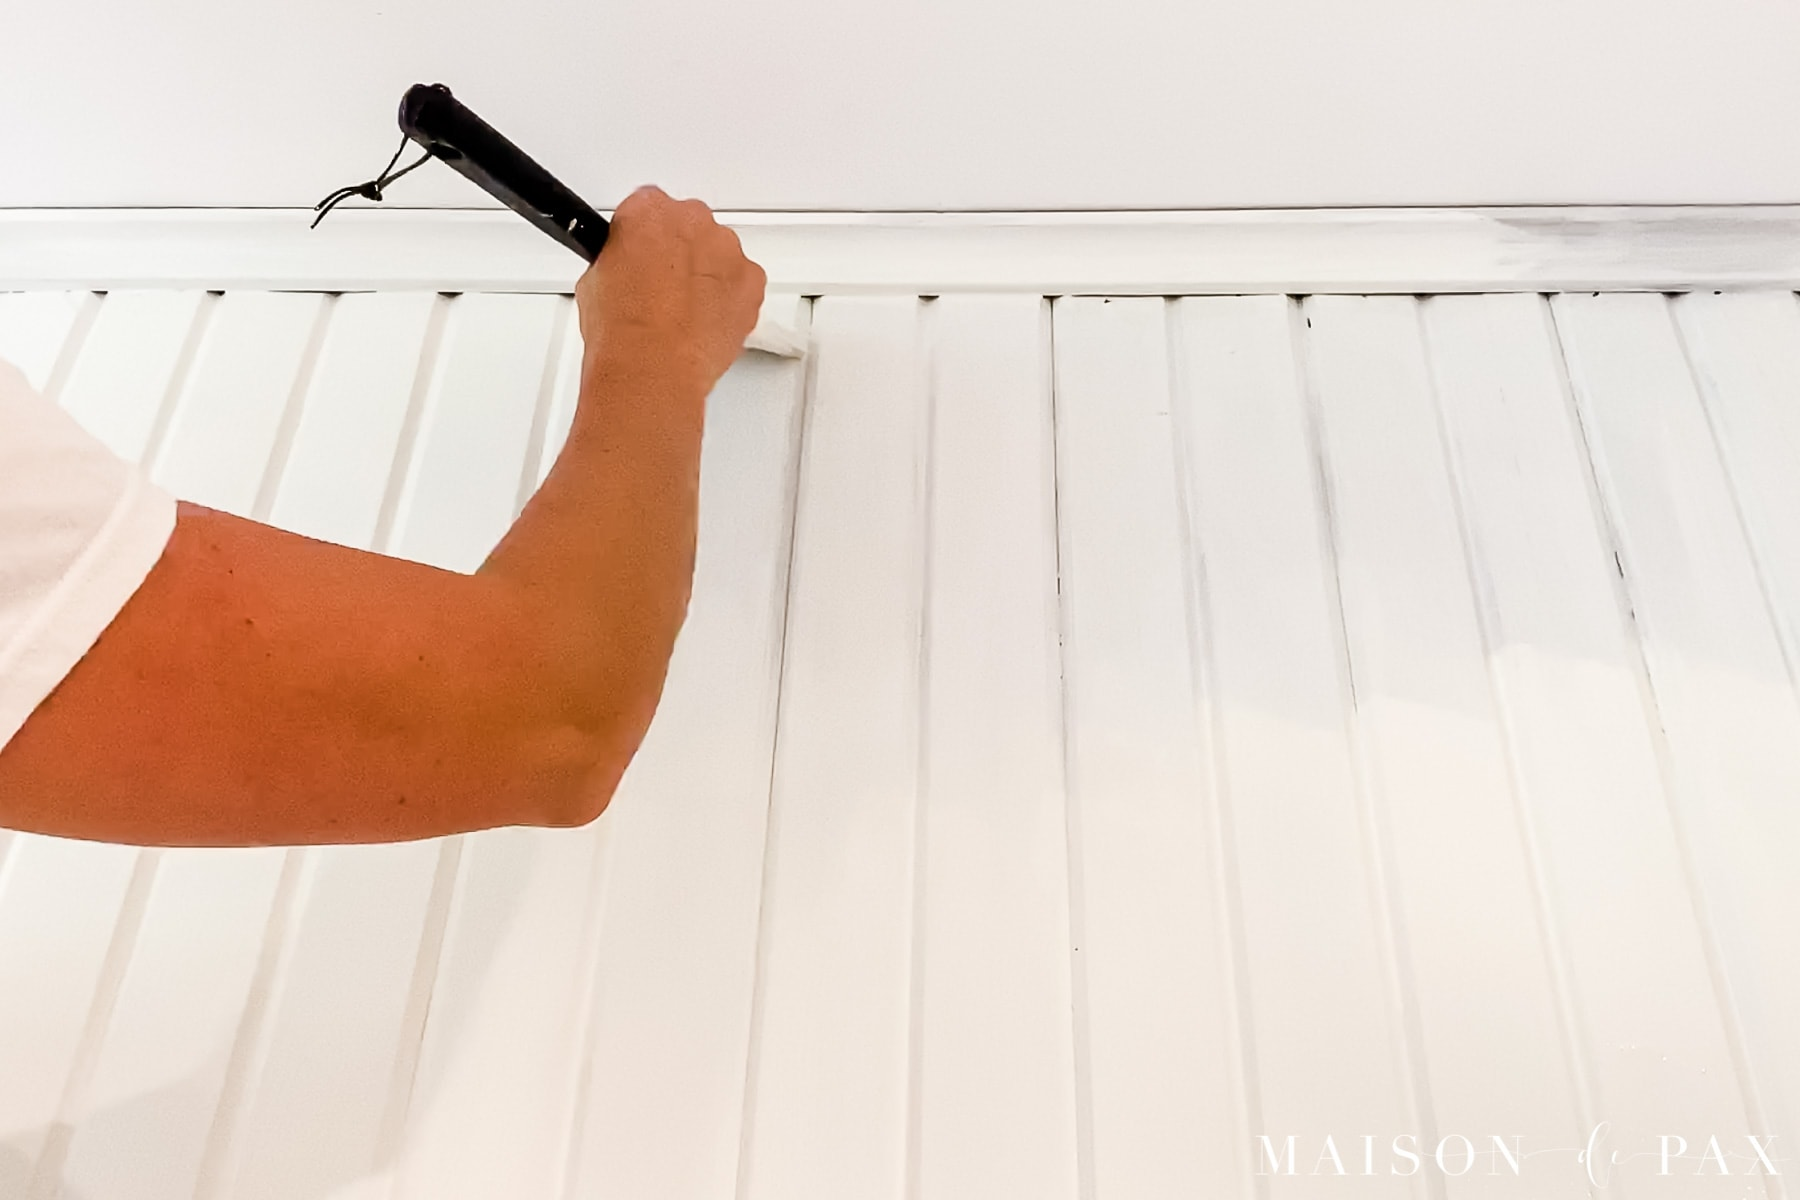 painting wood paneling with a angled brush | Maison de Pax